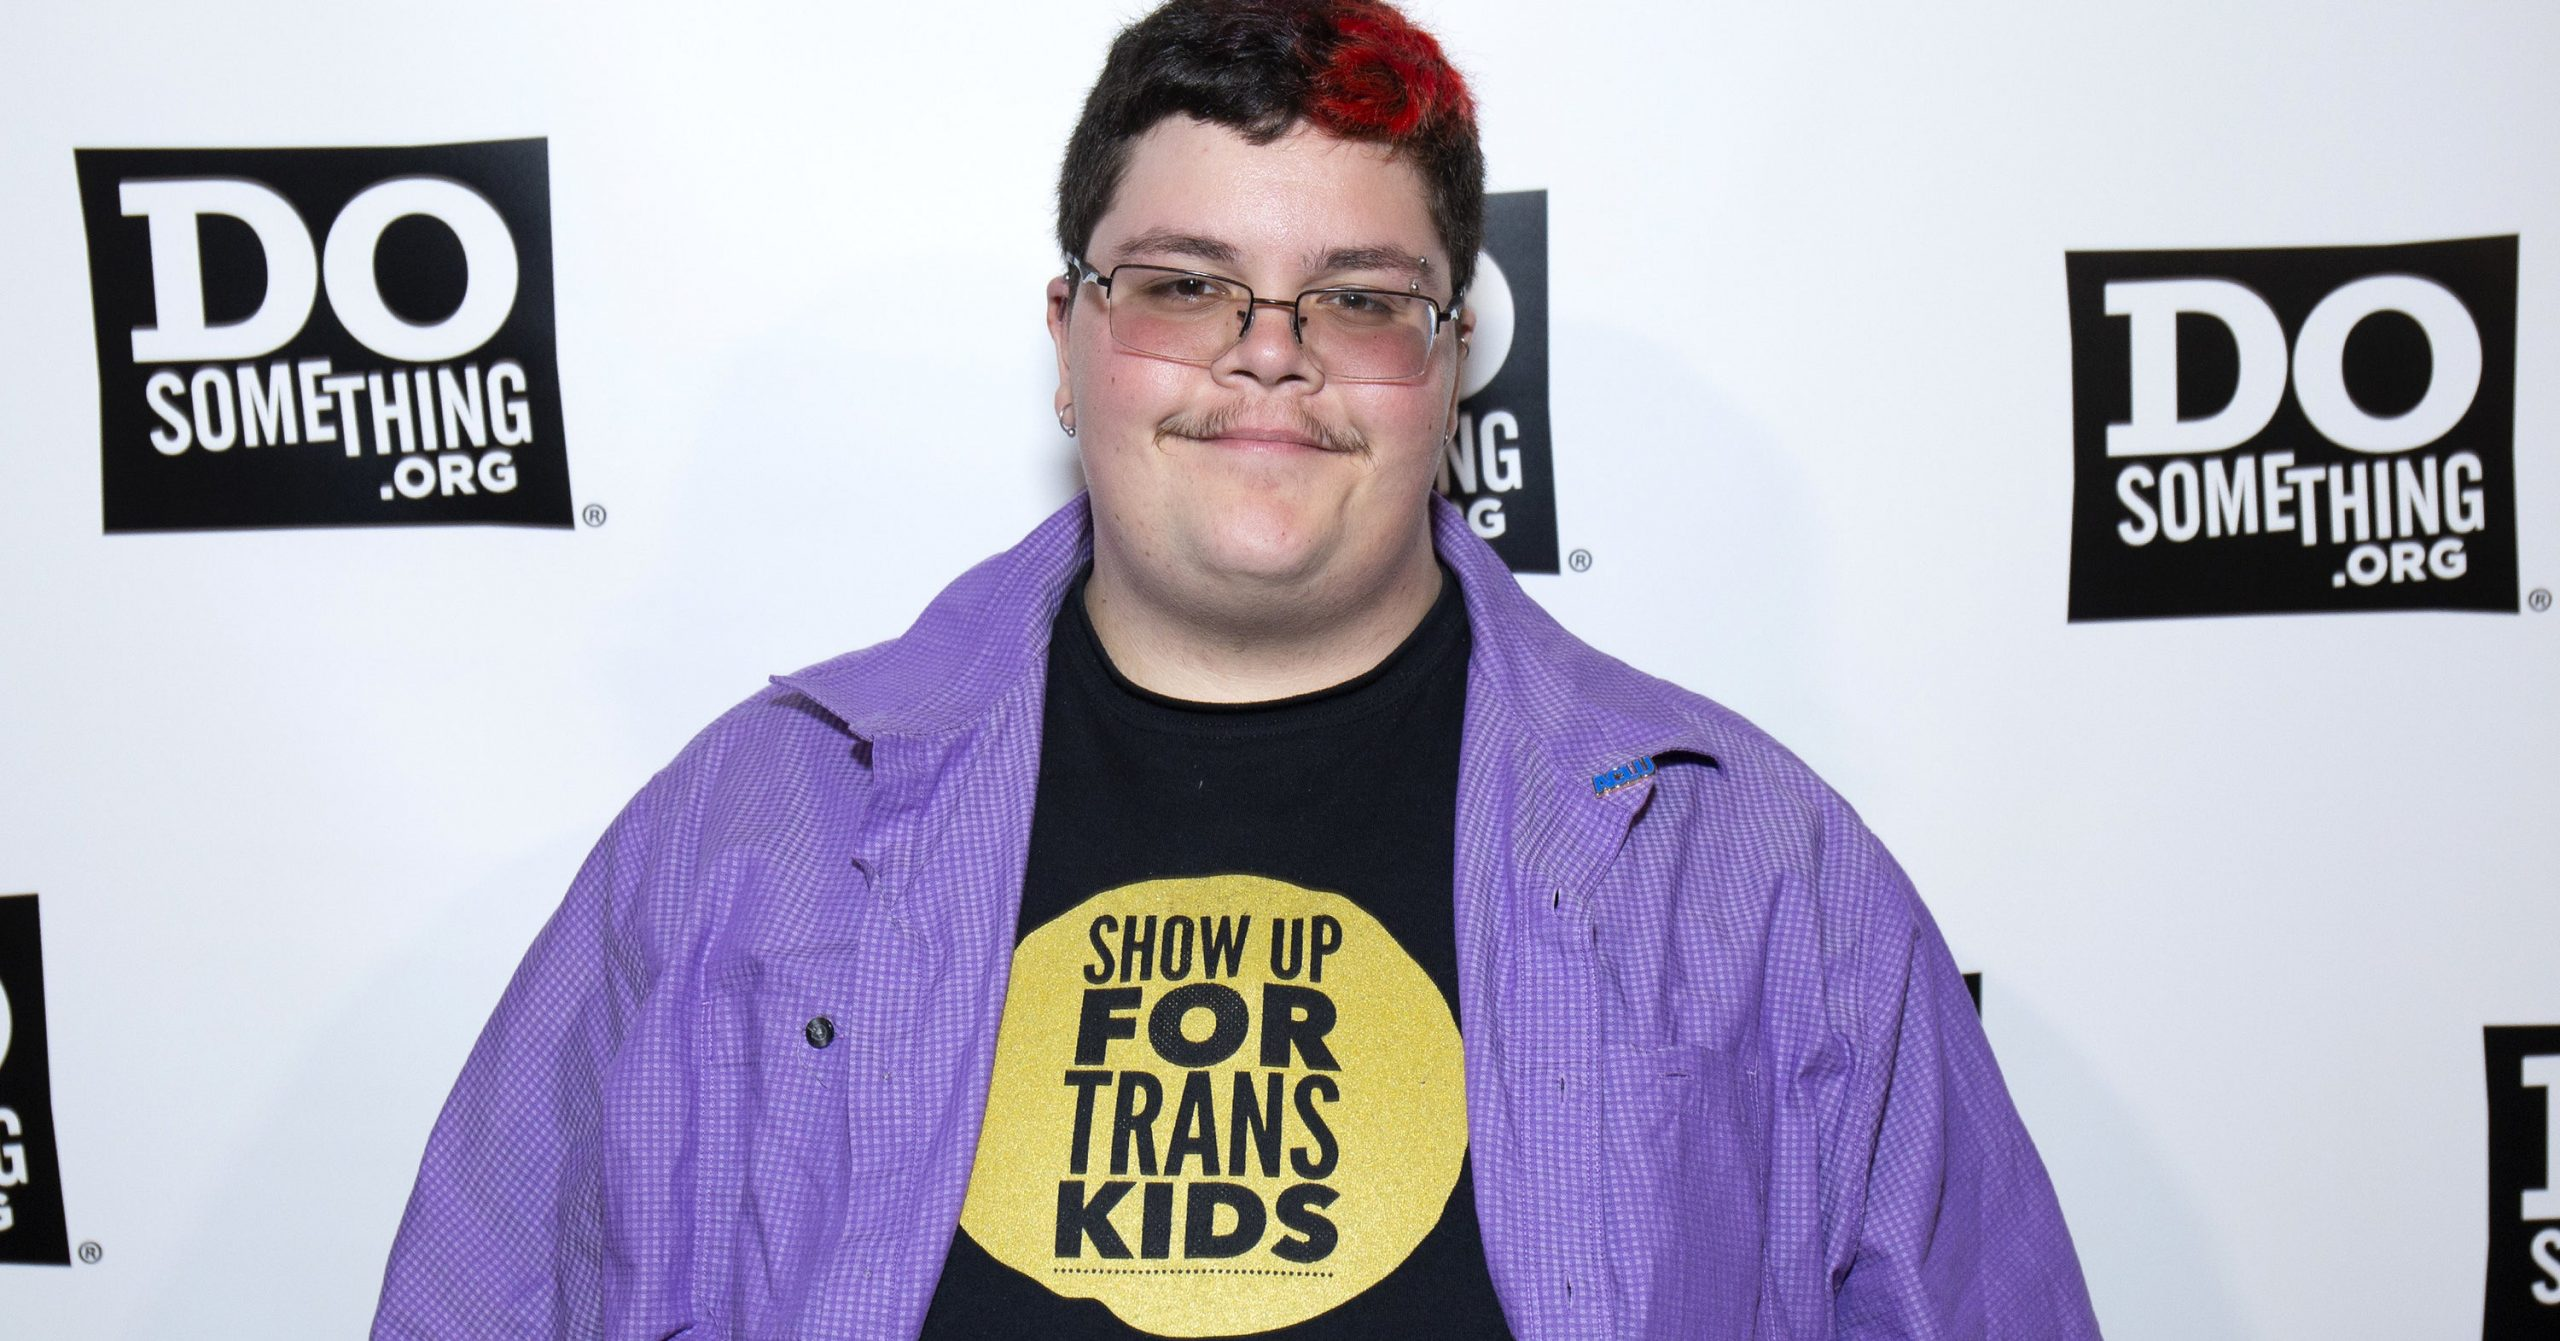 Finally Transgender Student Wins as U.S. Supreme Court, Now He can also use Bathroom